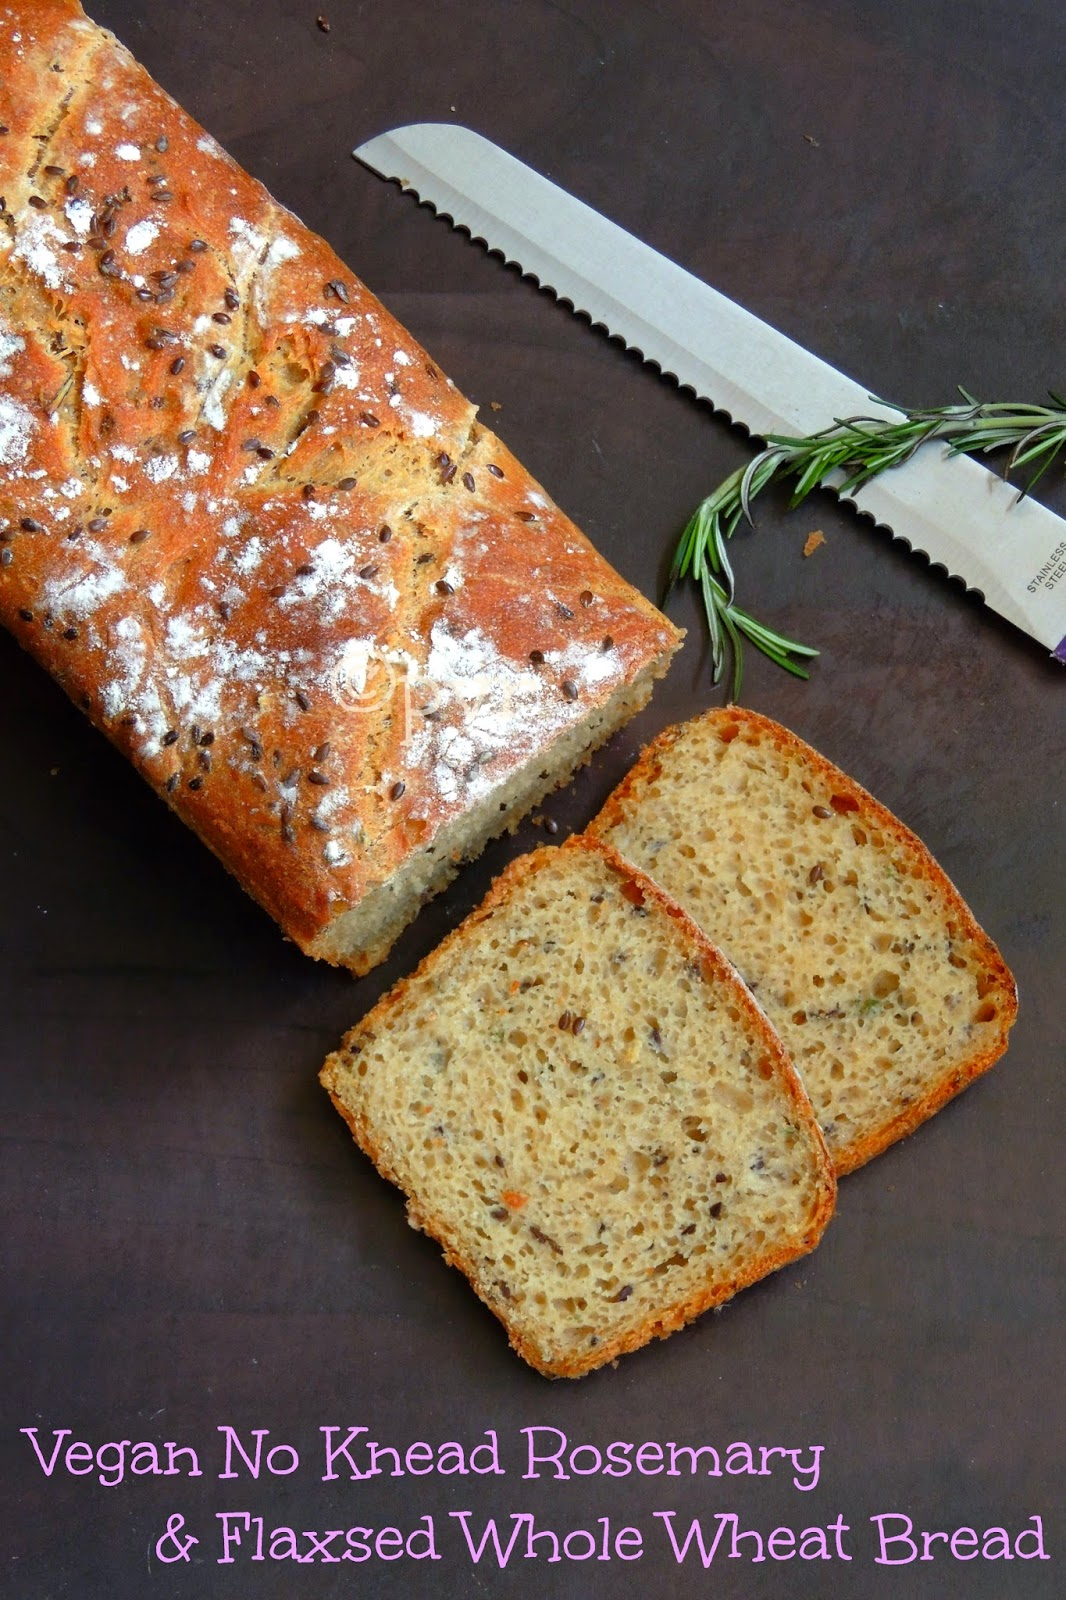 No knead vegan rosemary and flaxseed bread, no knead wholewheat bread, Vegan no knead loaf bread